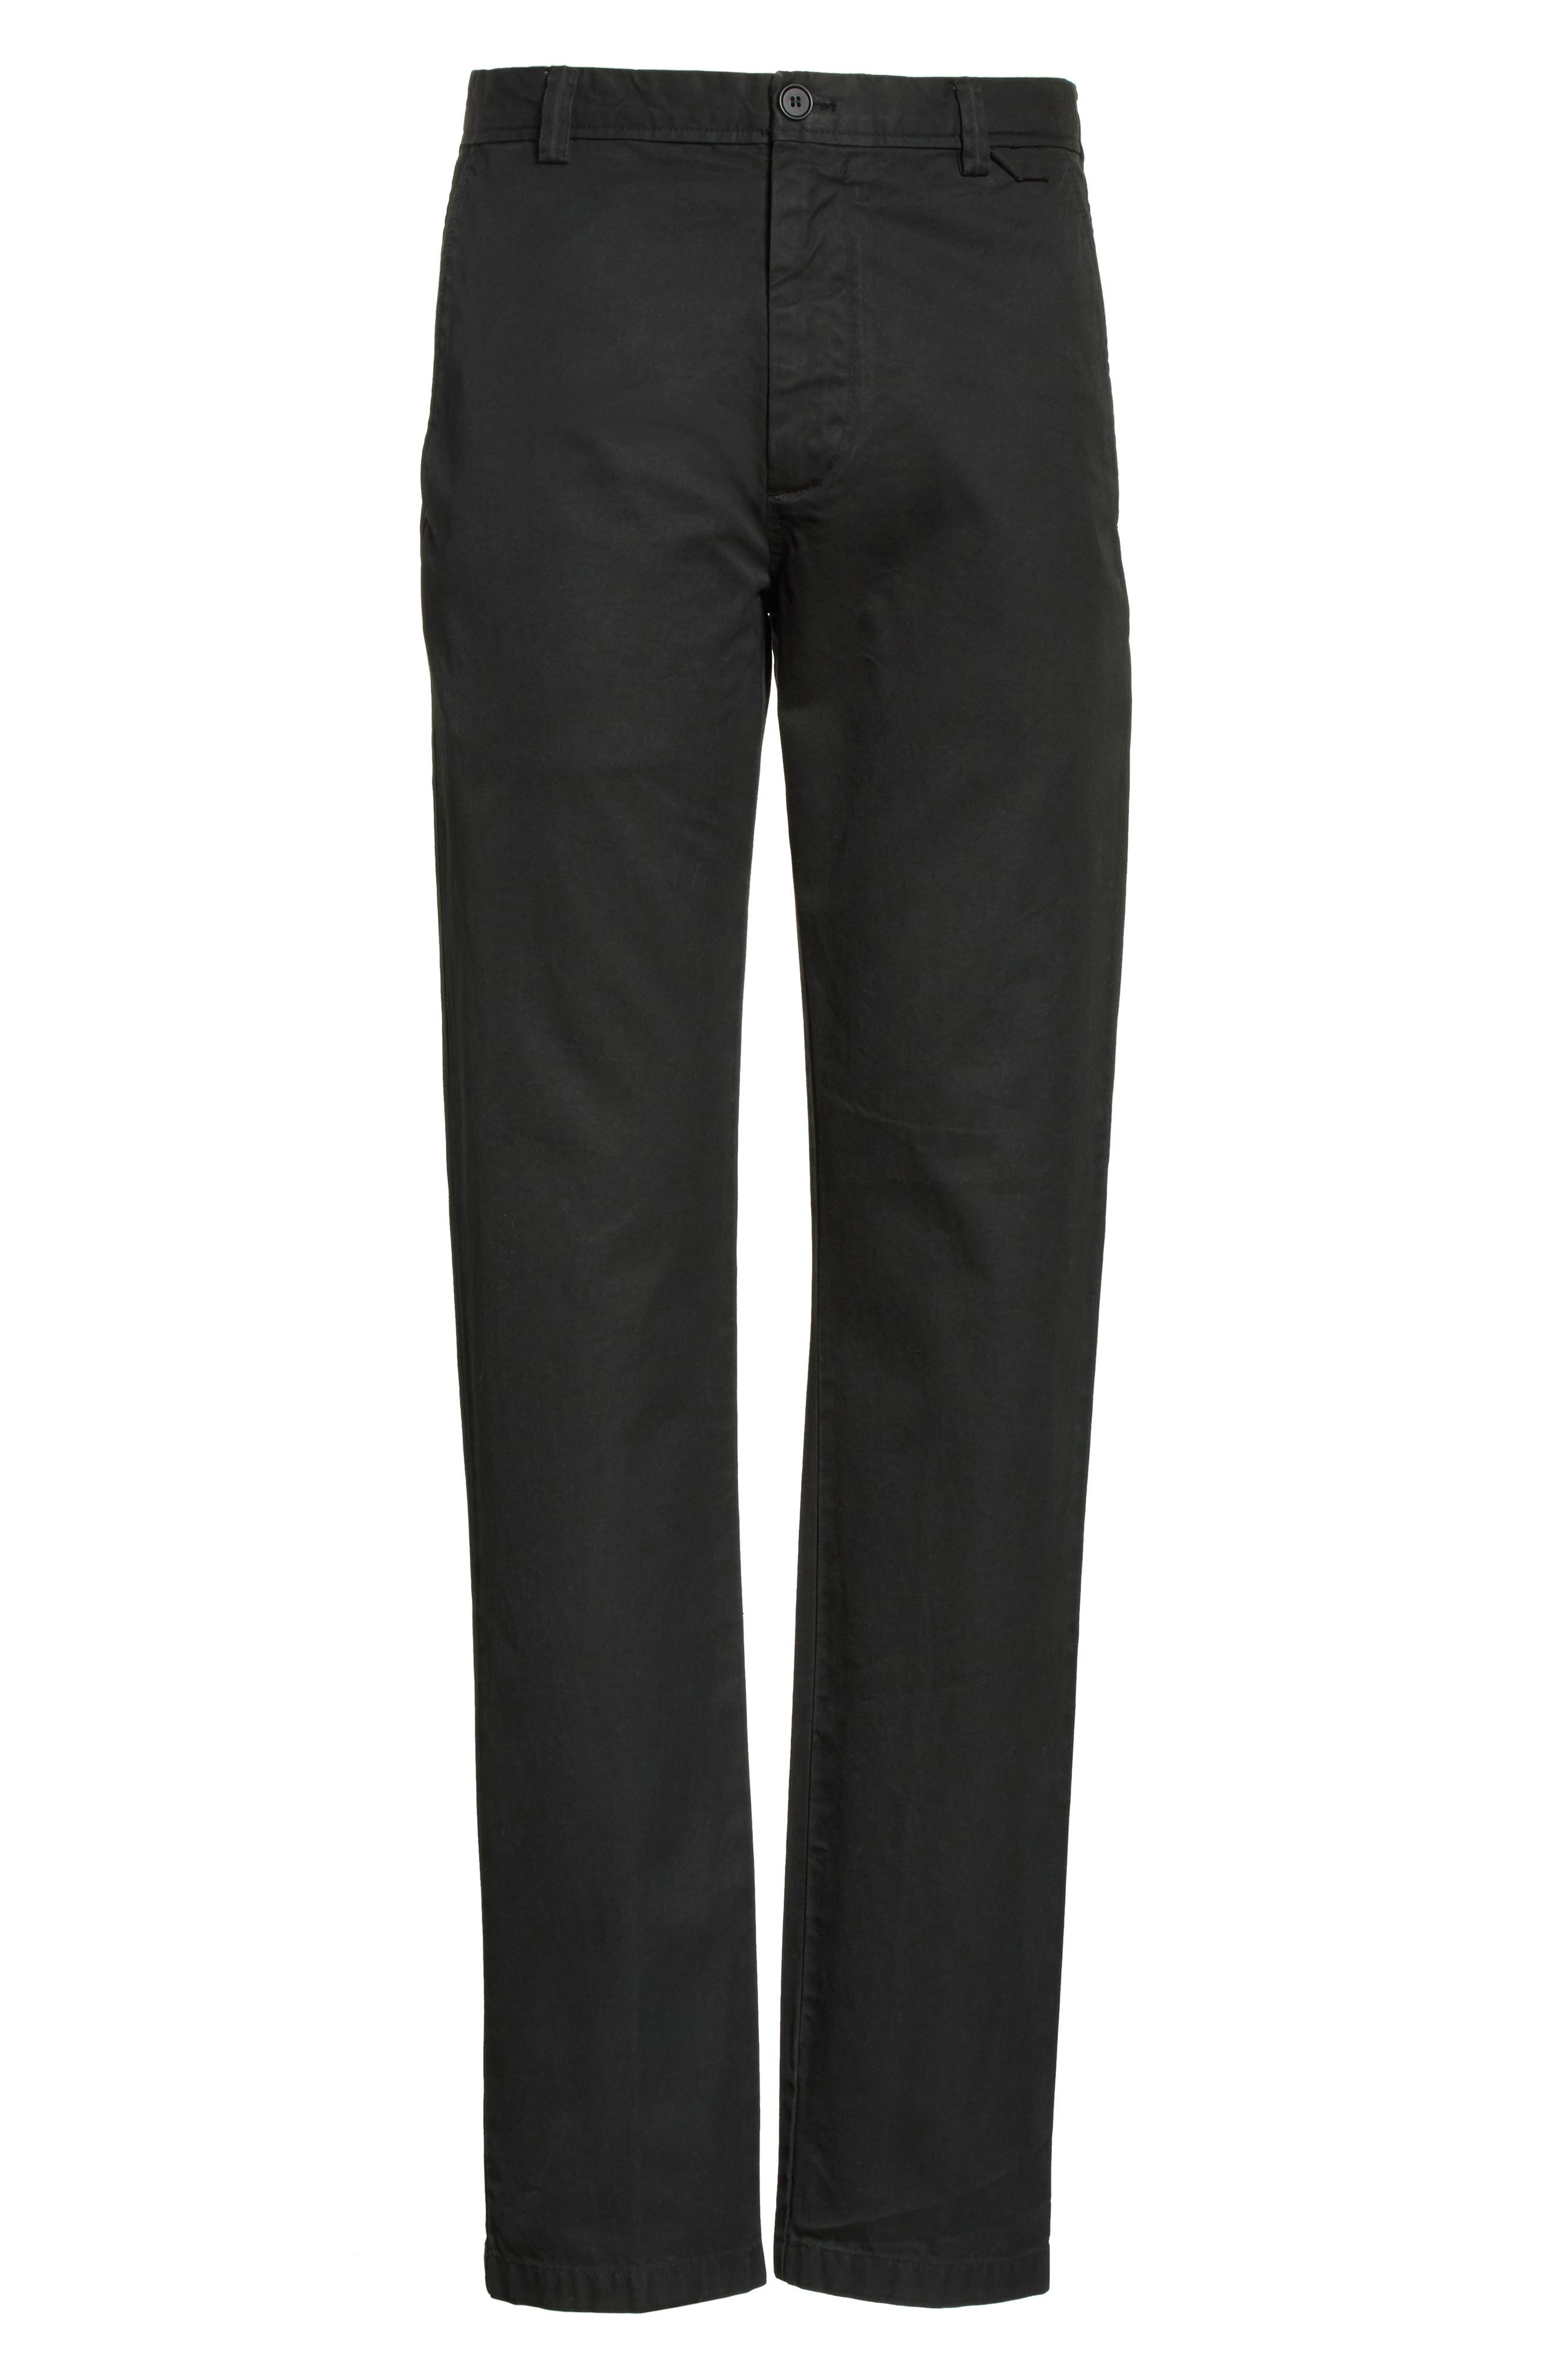 Isher Chinos,                             Alternate thumbnail 6, color,                             Coal Black